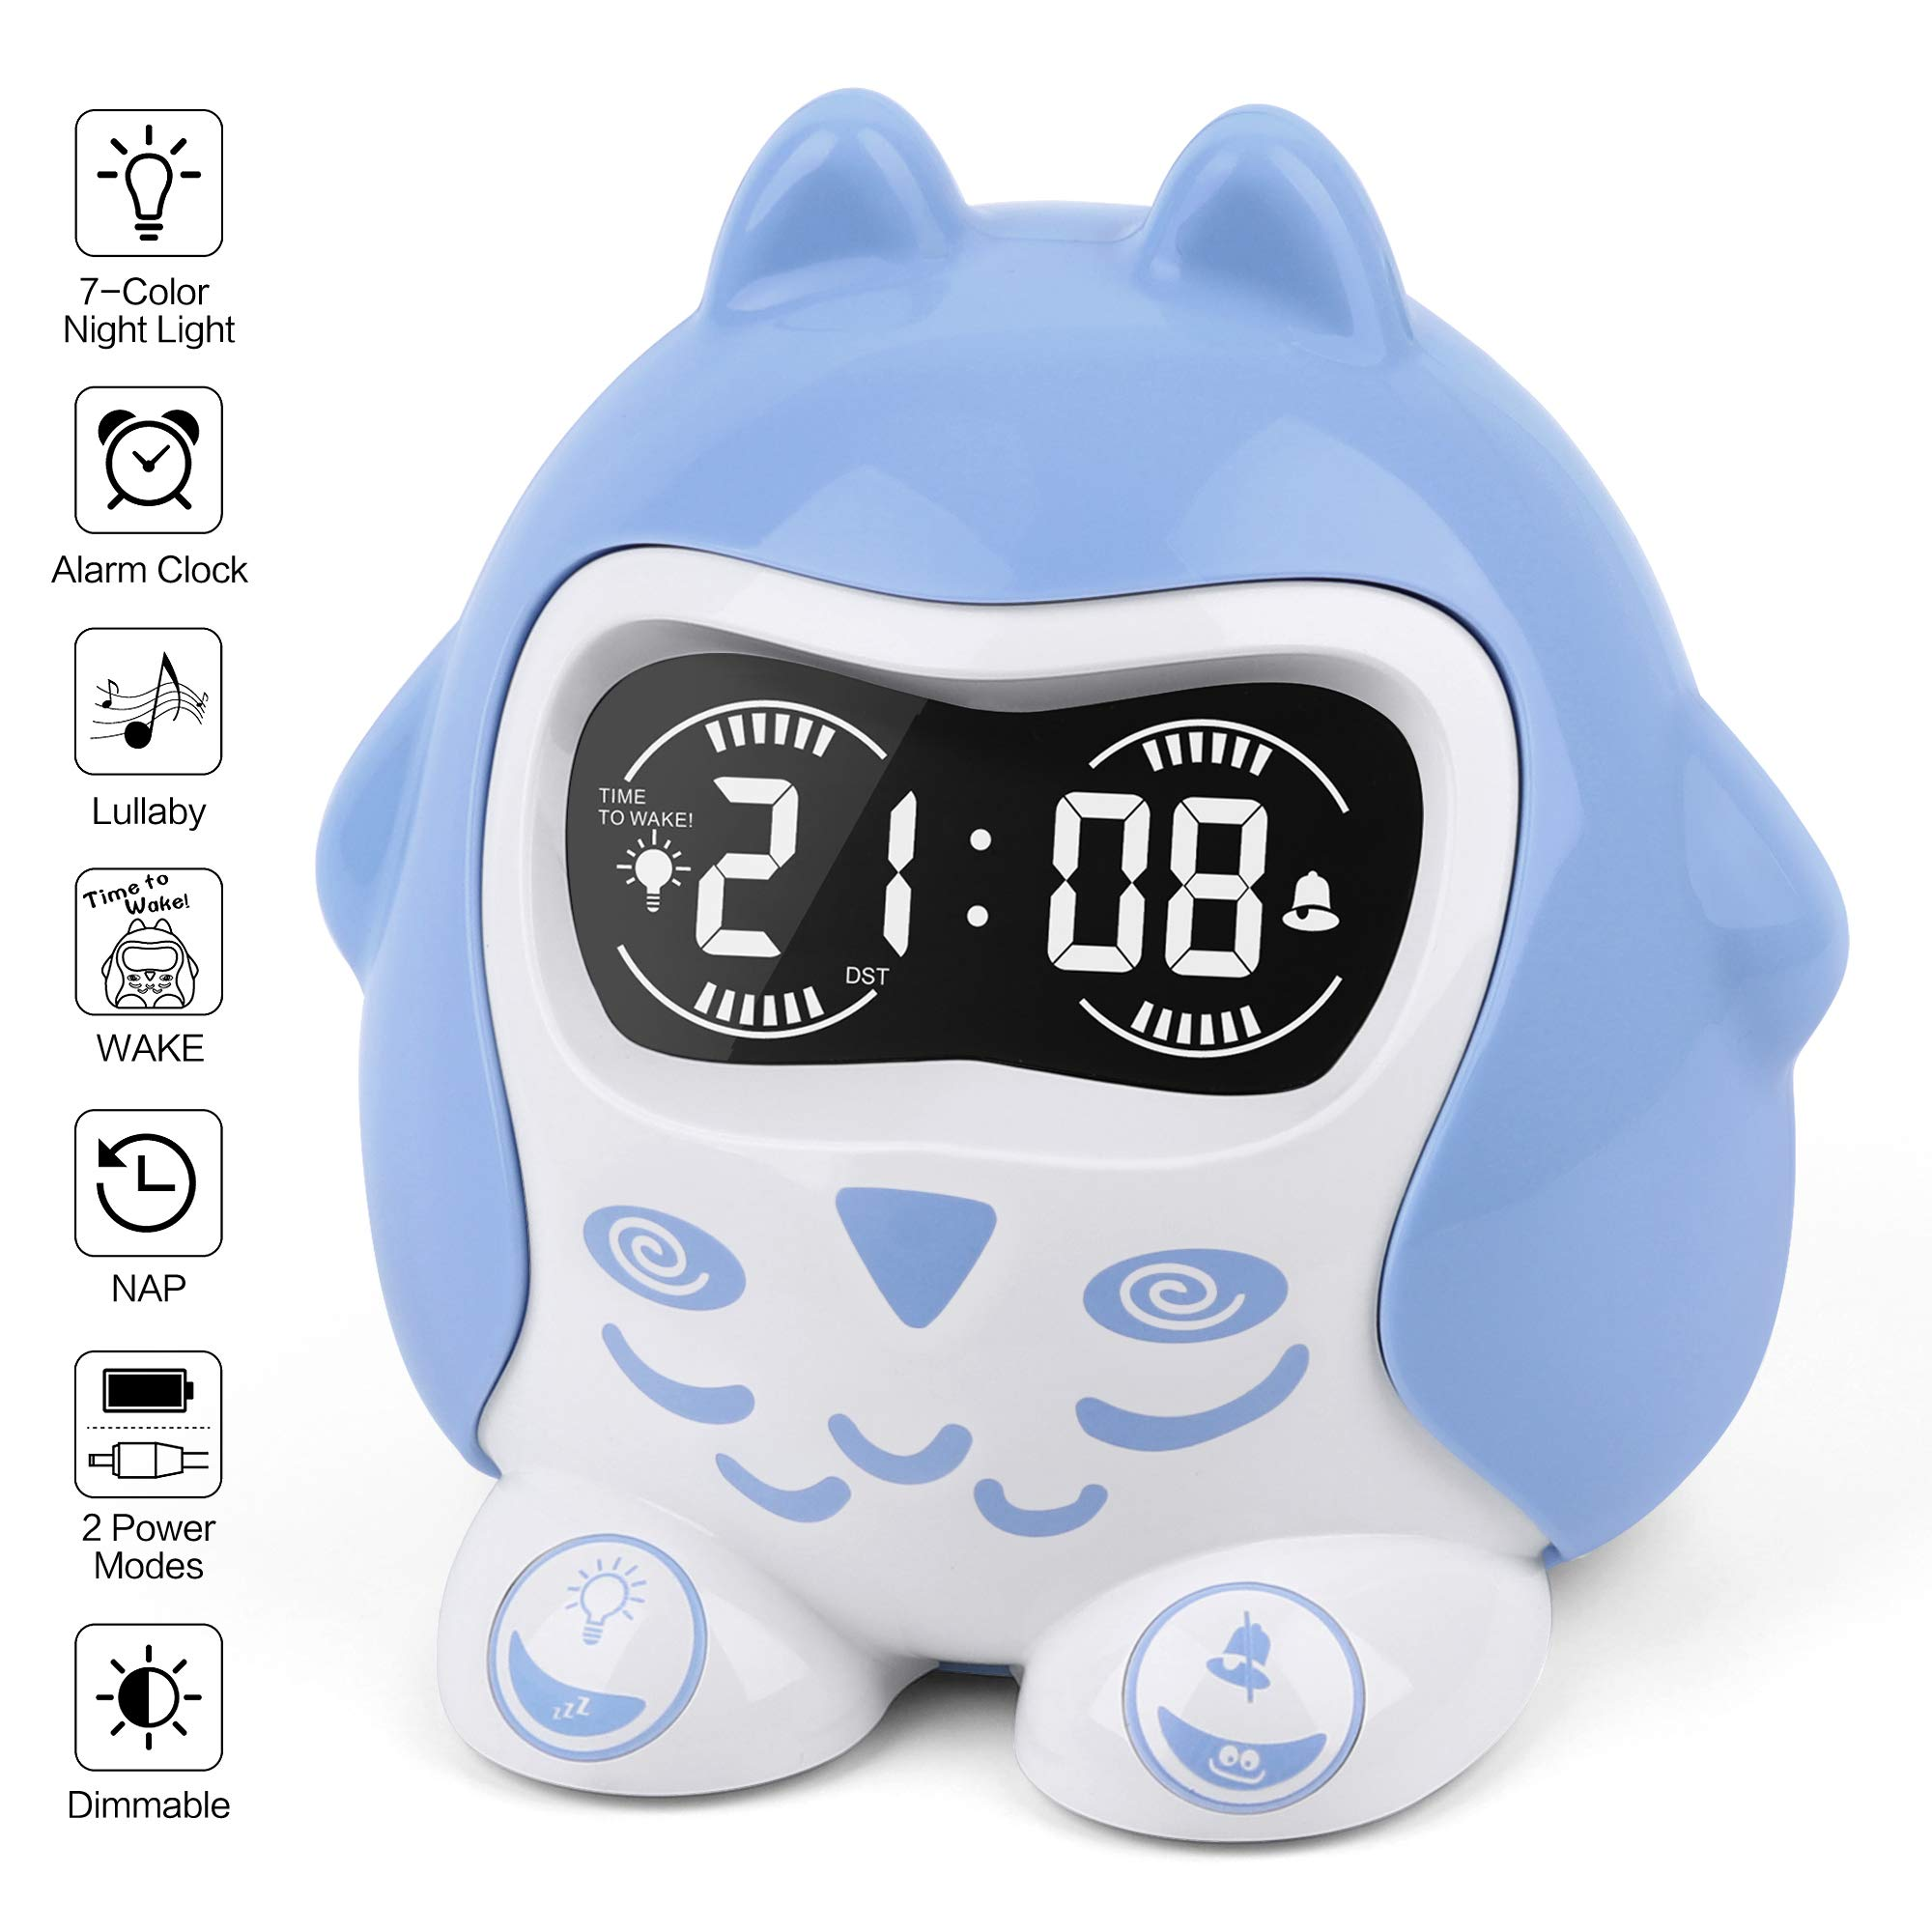 Time to Wake Kids' Sleep Trainer, White Noise Machine with 9 Sleep Lullaby Sounds & Timer, 7-Color Night Light, 12/24H, NAP, Plug in/Battery Powered Digital Alarm Clock for Toddler Girls Boys Bedroom